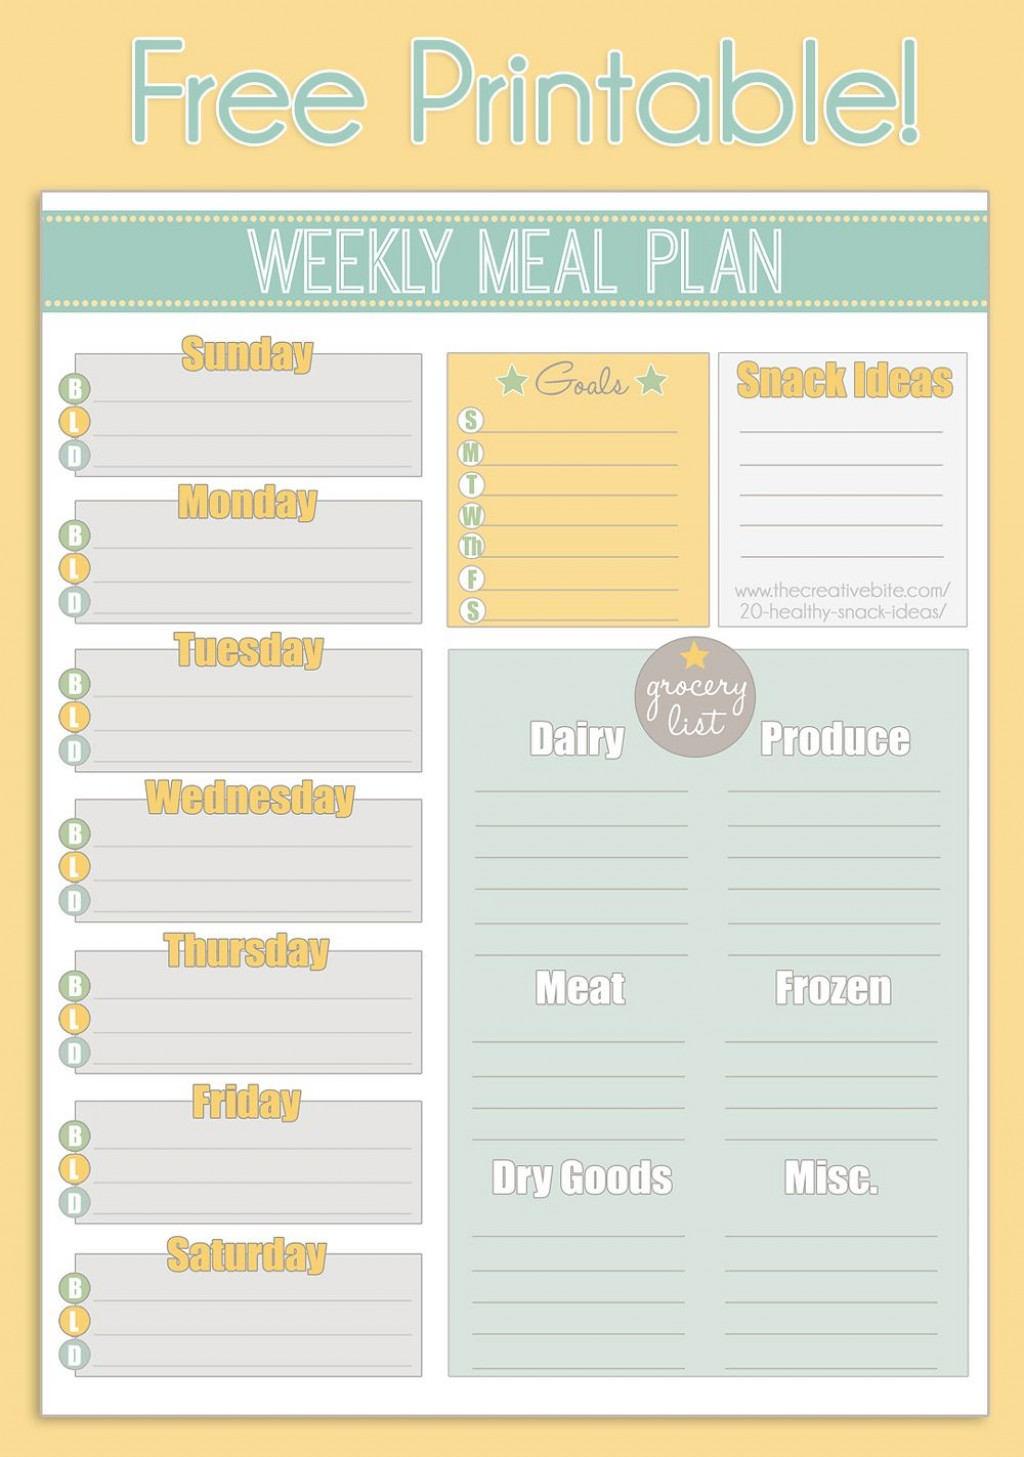 004 Simple Free Meal Plan Template Highest Quality  Templates Easy Keto Printable Planner For Weight LosLarge